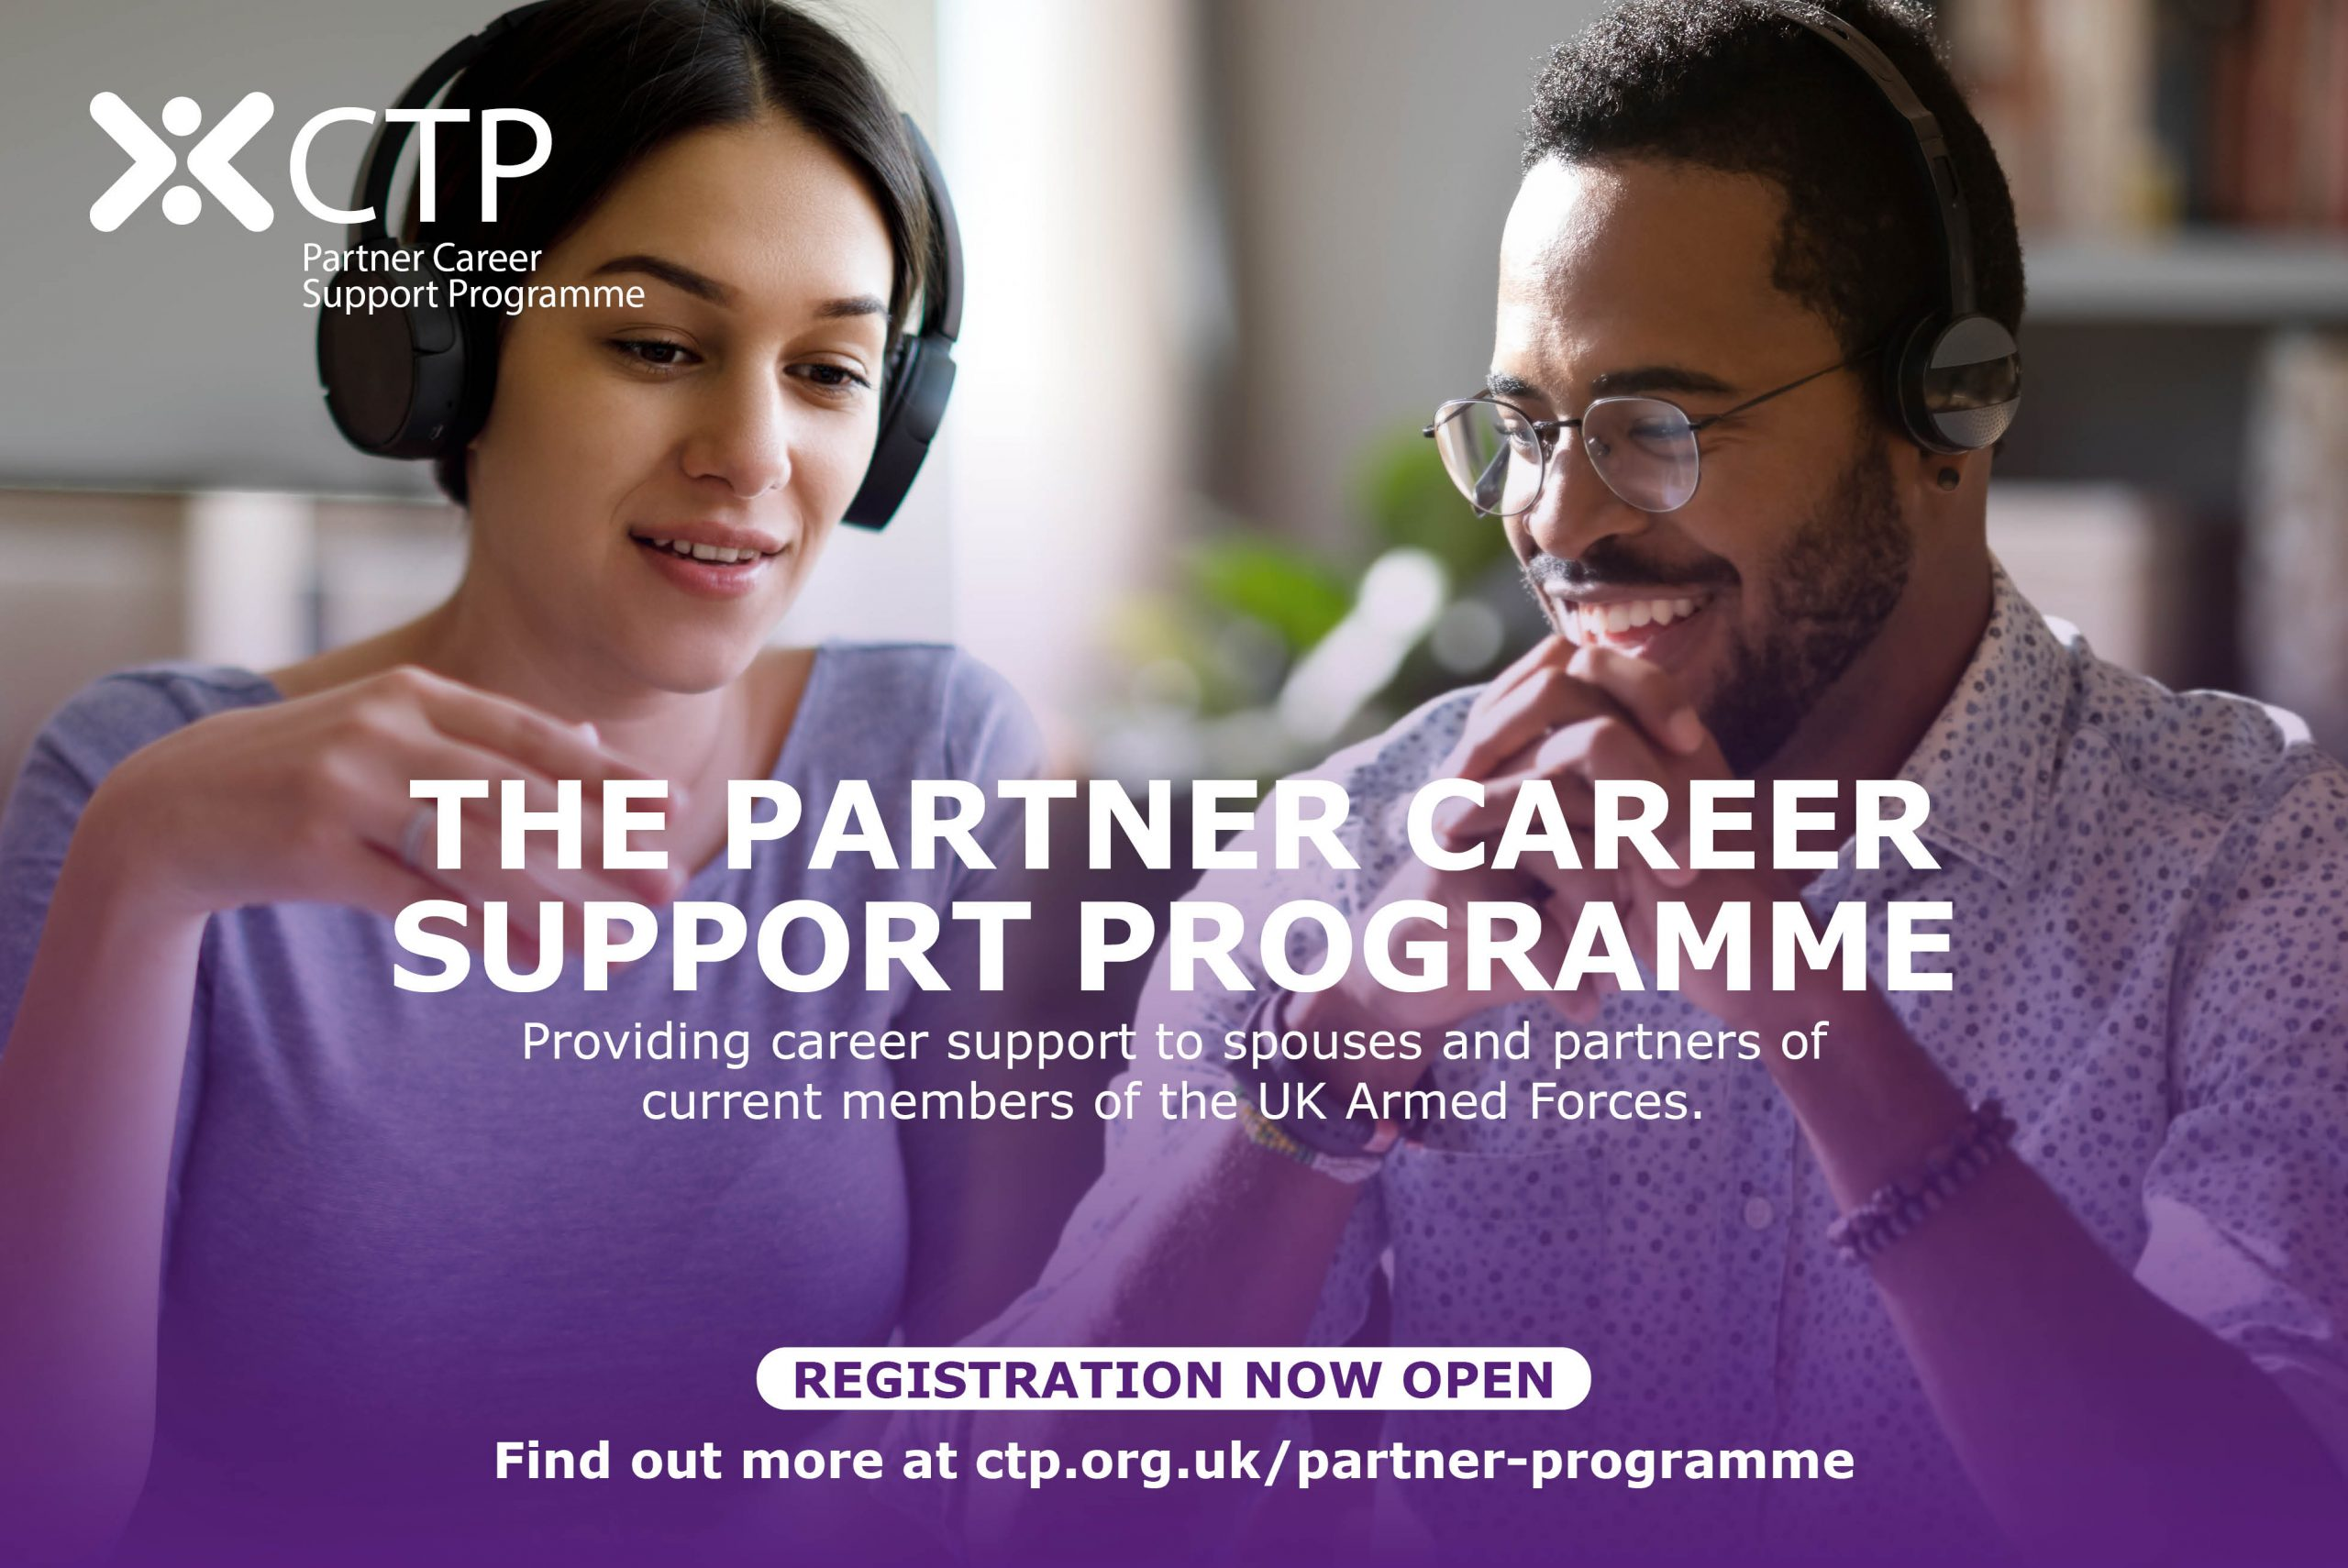 Partner Career Support Programme - registration now open